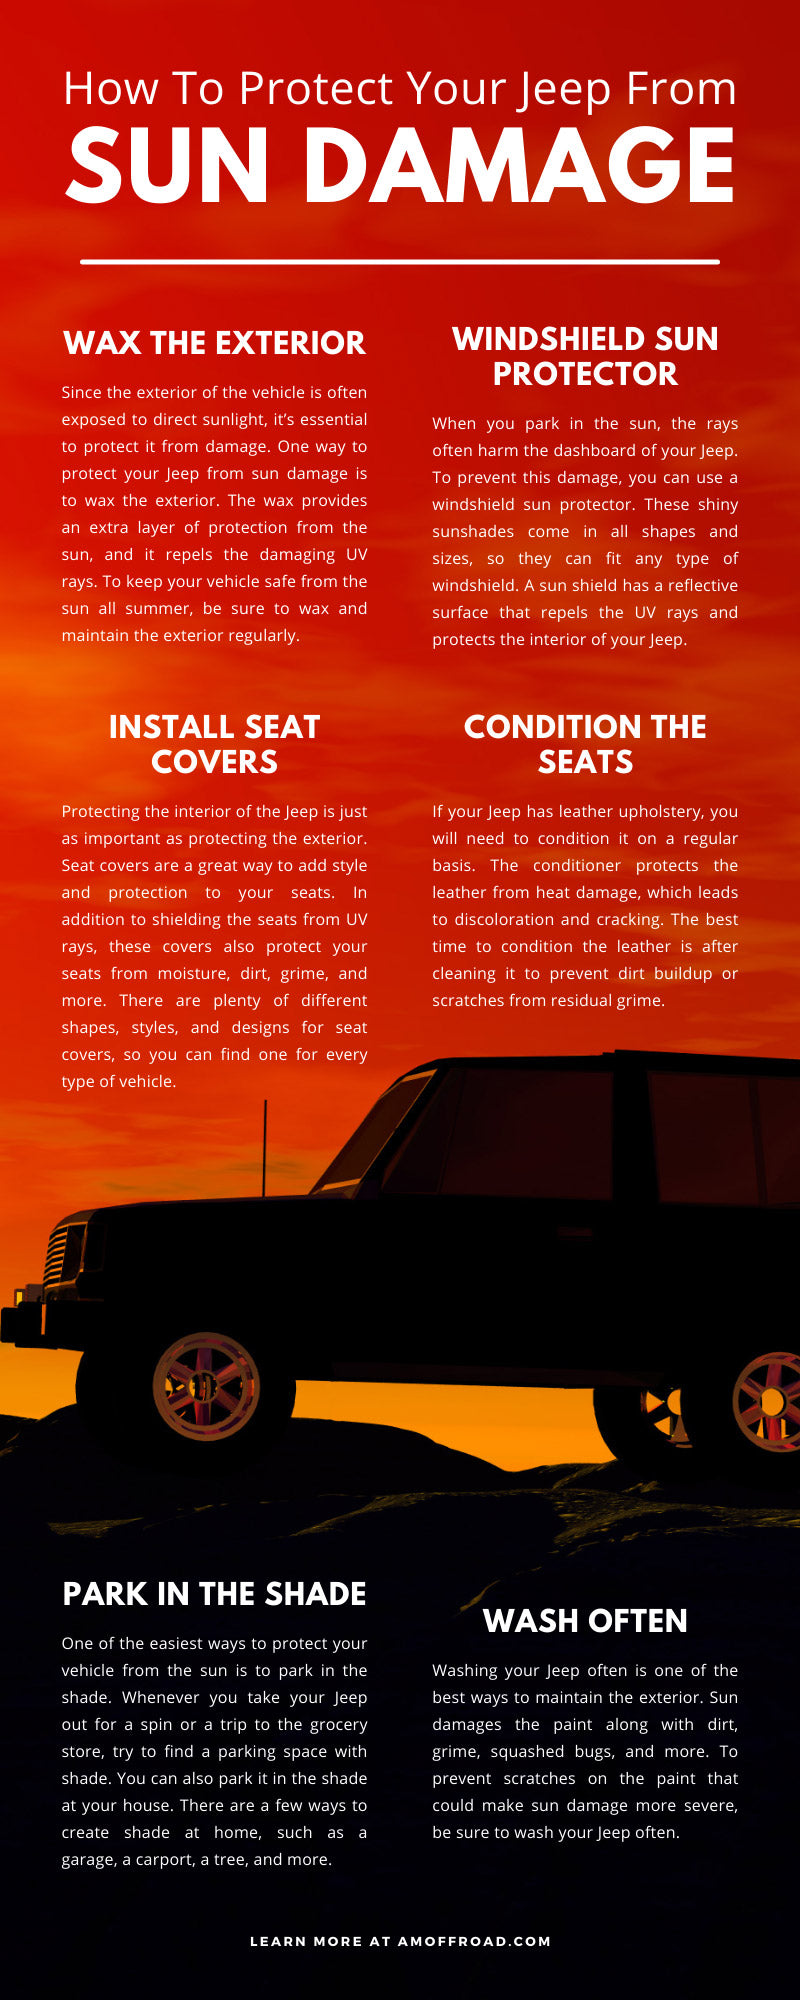 How To Protect Your Jeep From Sun Damage